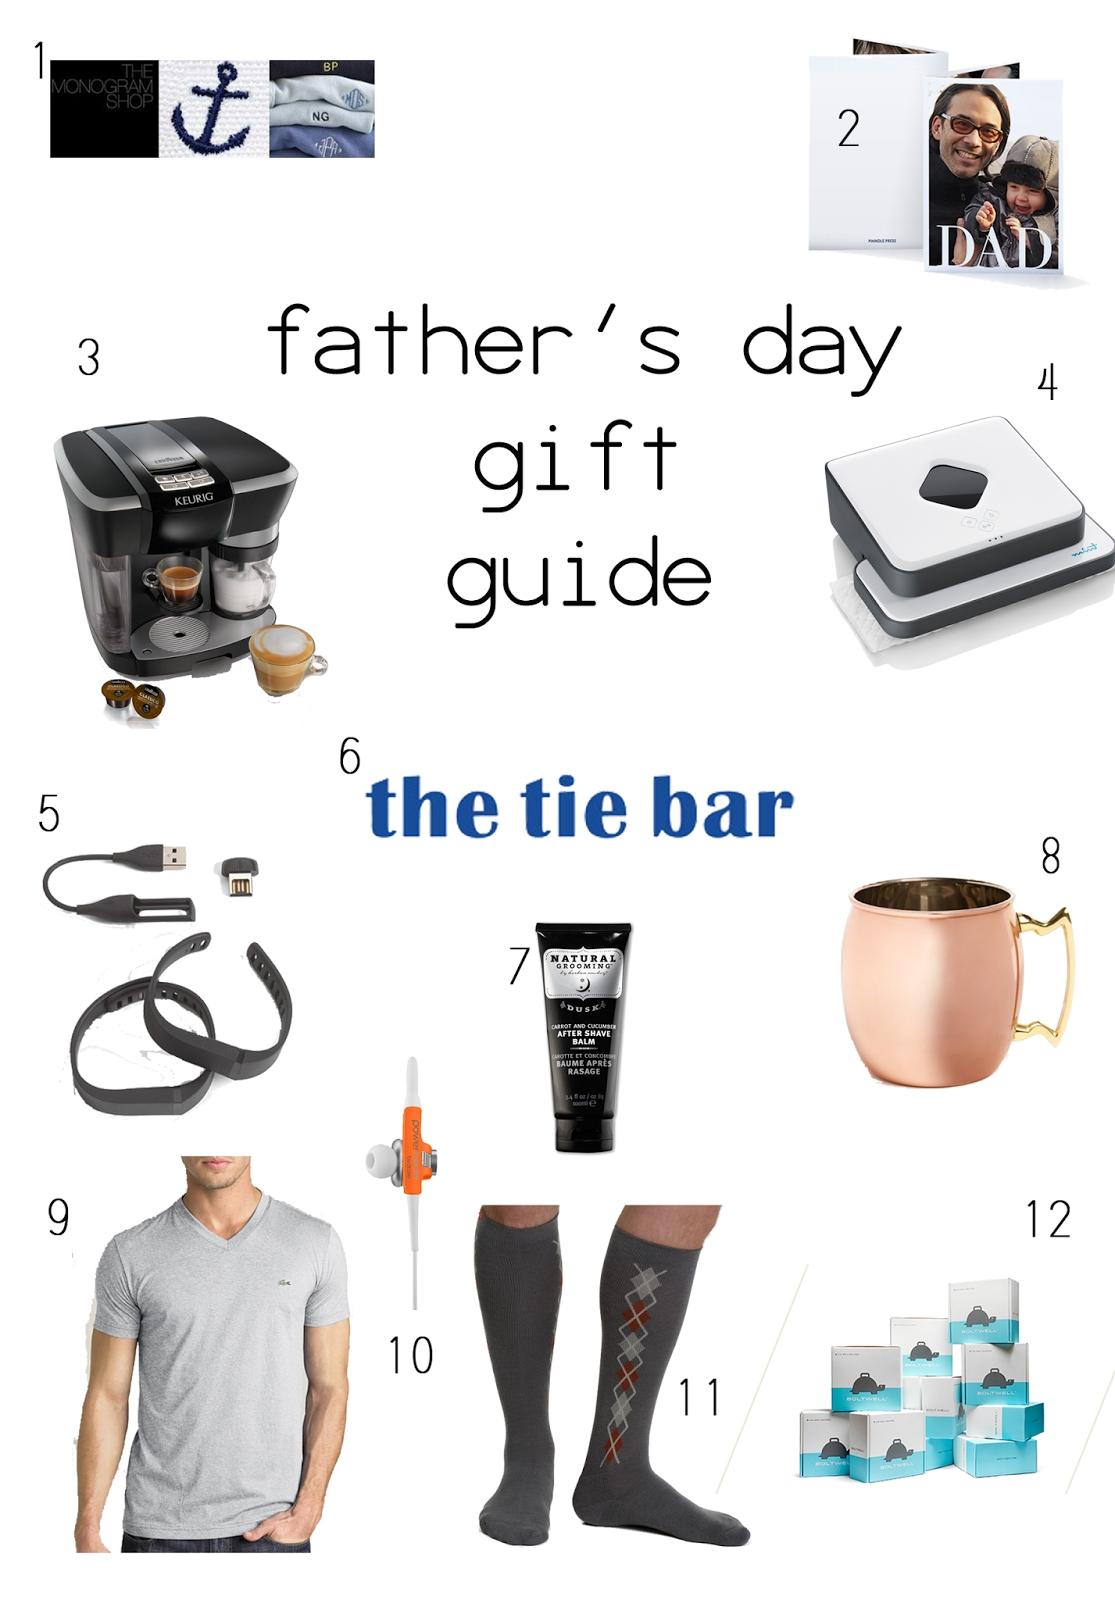 10 Most Recommended Gift Ideas For Father In Law fathers day gift guide sarah tucker 1 2020